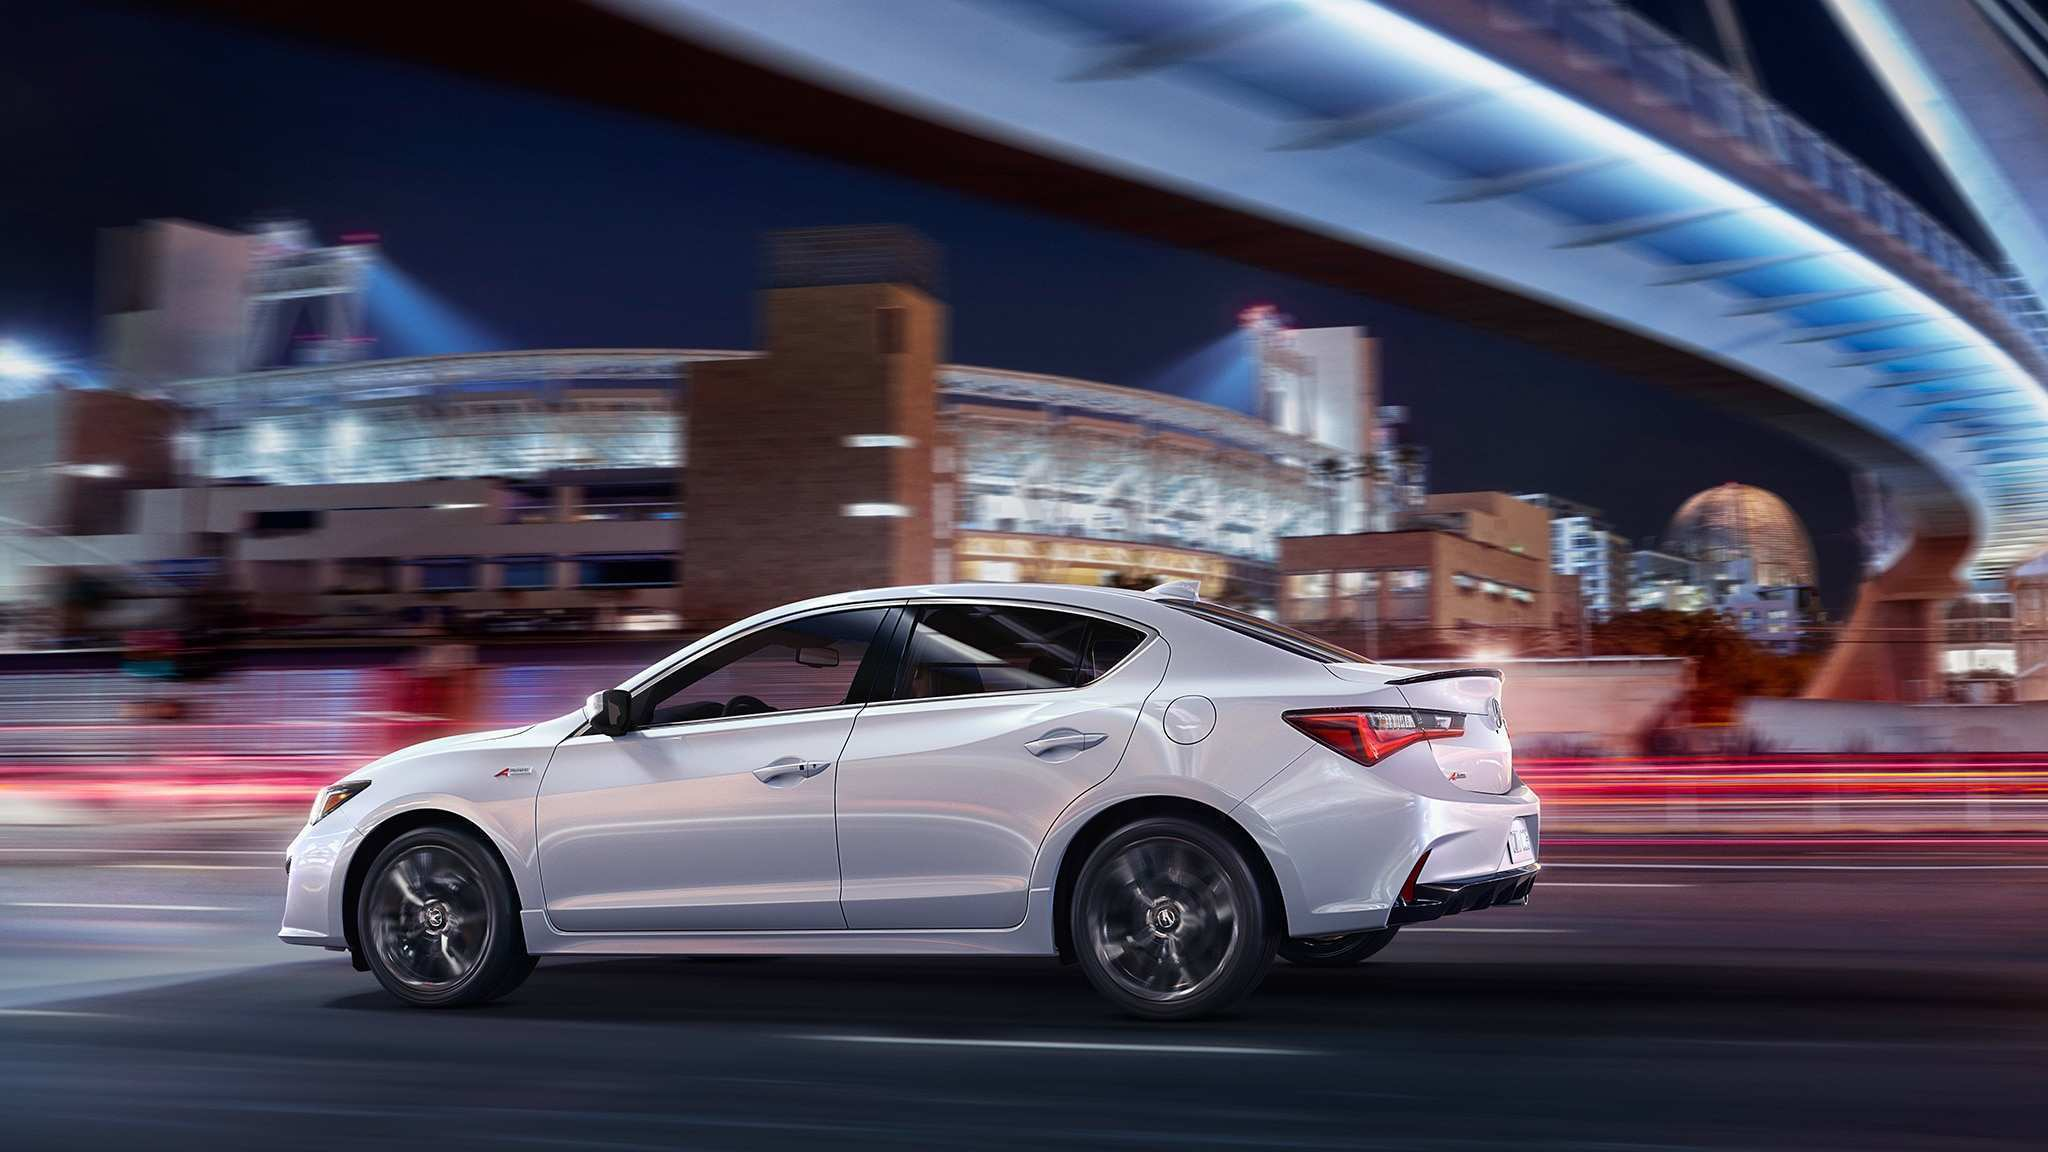 90 Best Review Acura Hatchback 2019 Configurations with Acura Hatchback 2019